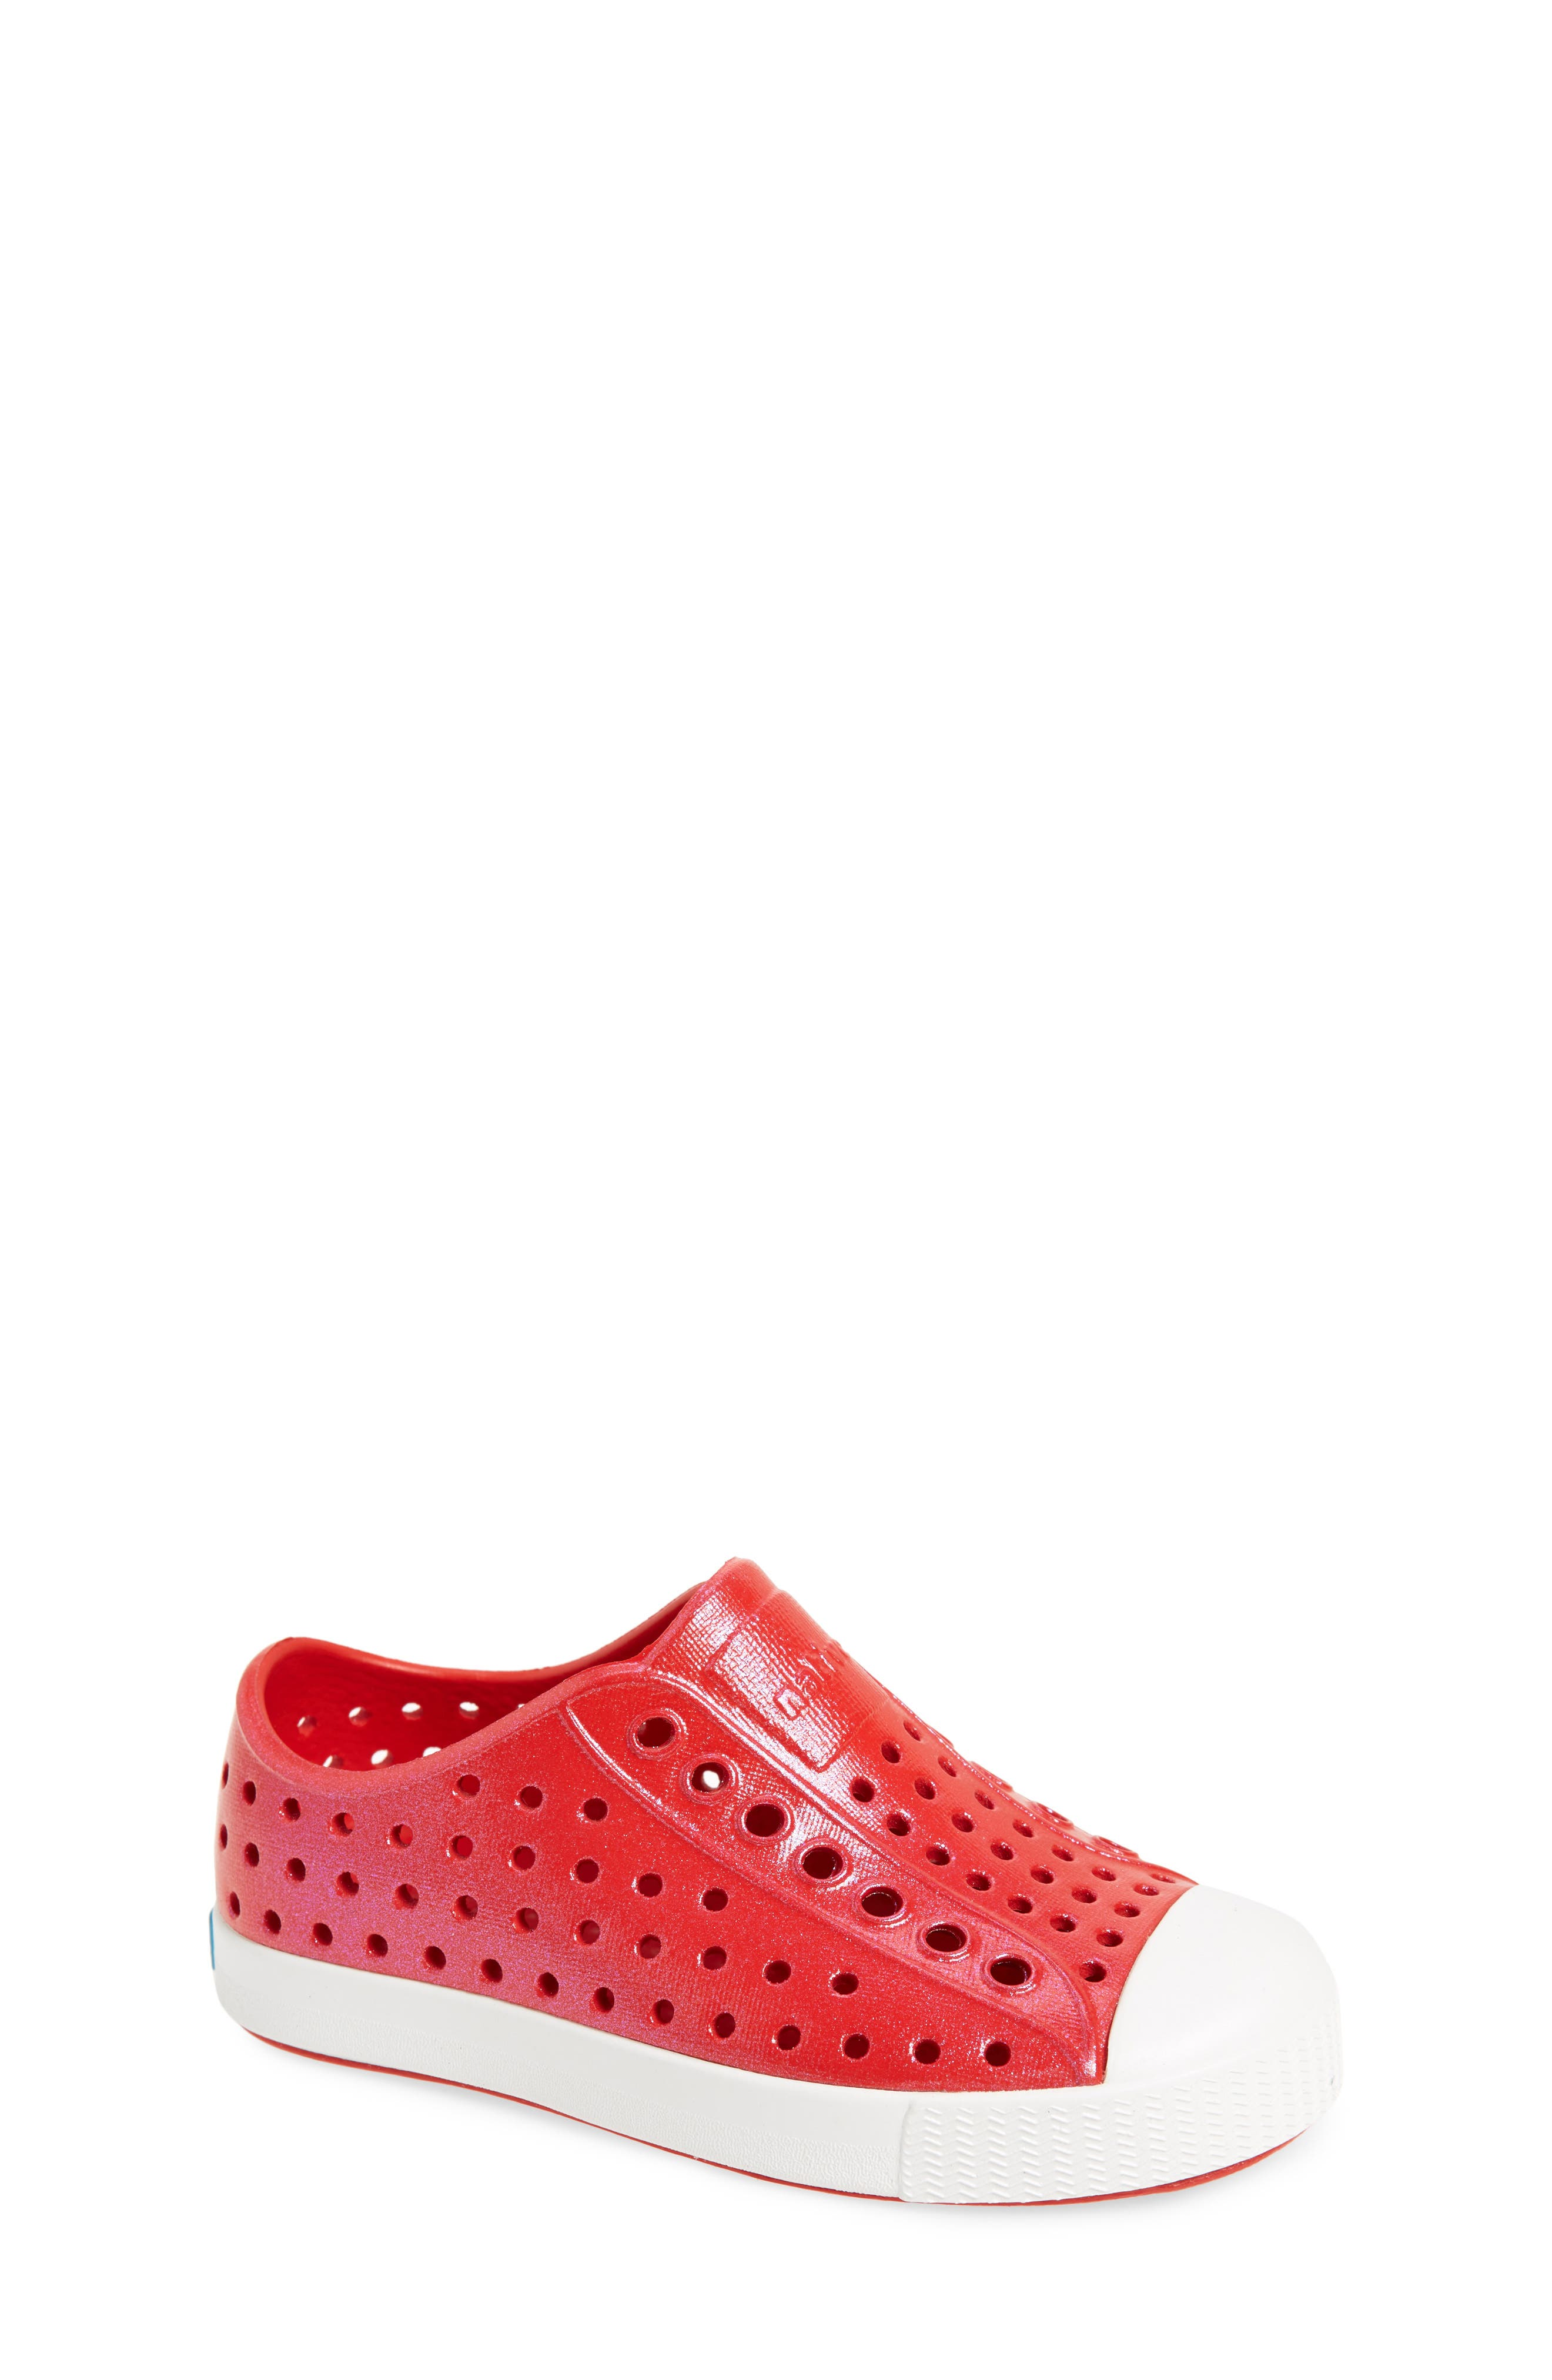 'Jefferson' Iridescent Slip-On Sneaker,                             Main thumbnail 1, color,                             Torch Red/ Shell White/ Galaxy